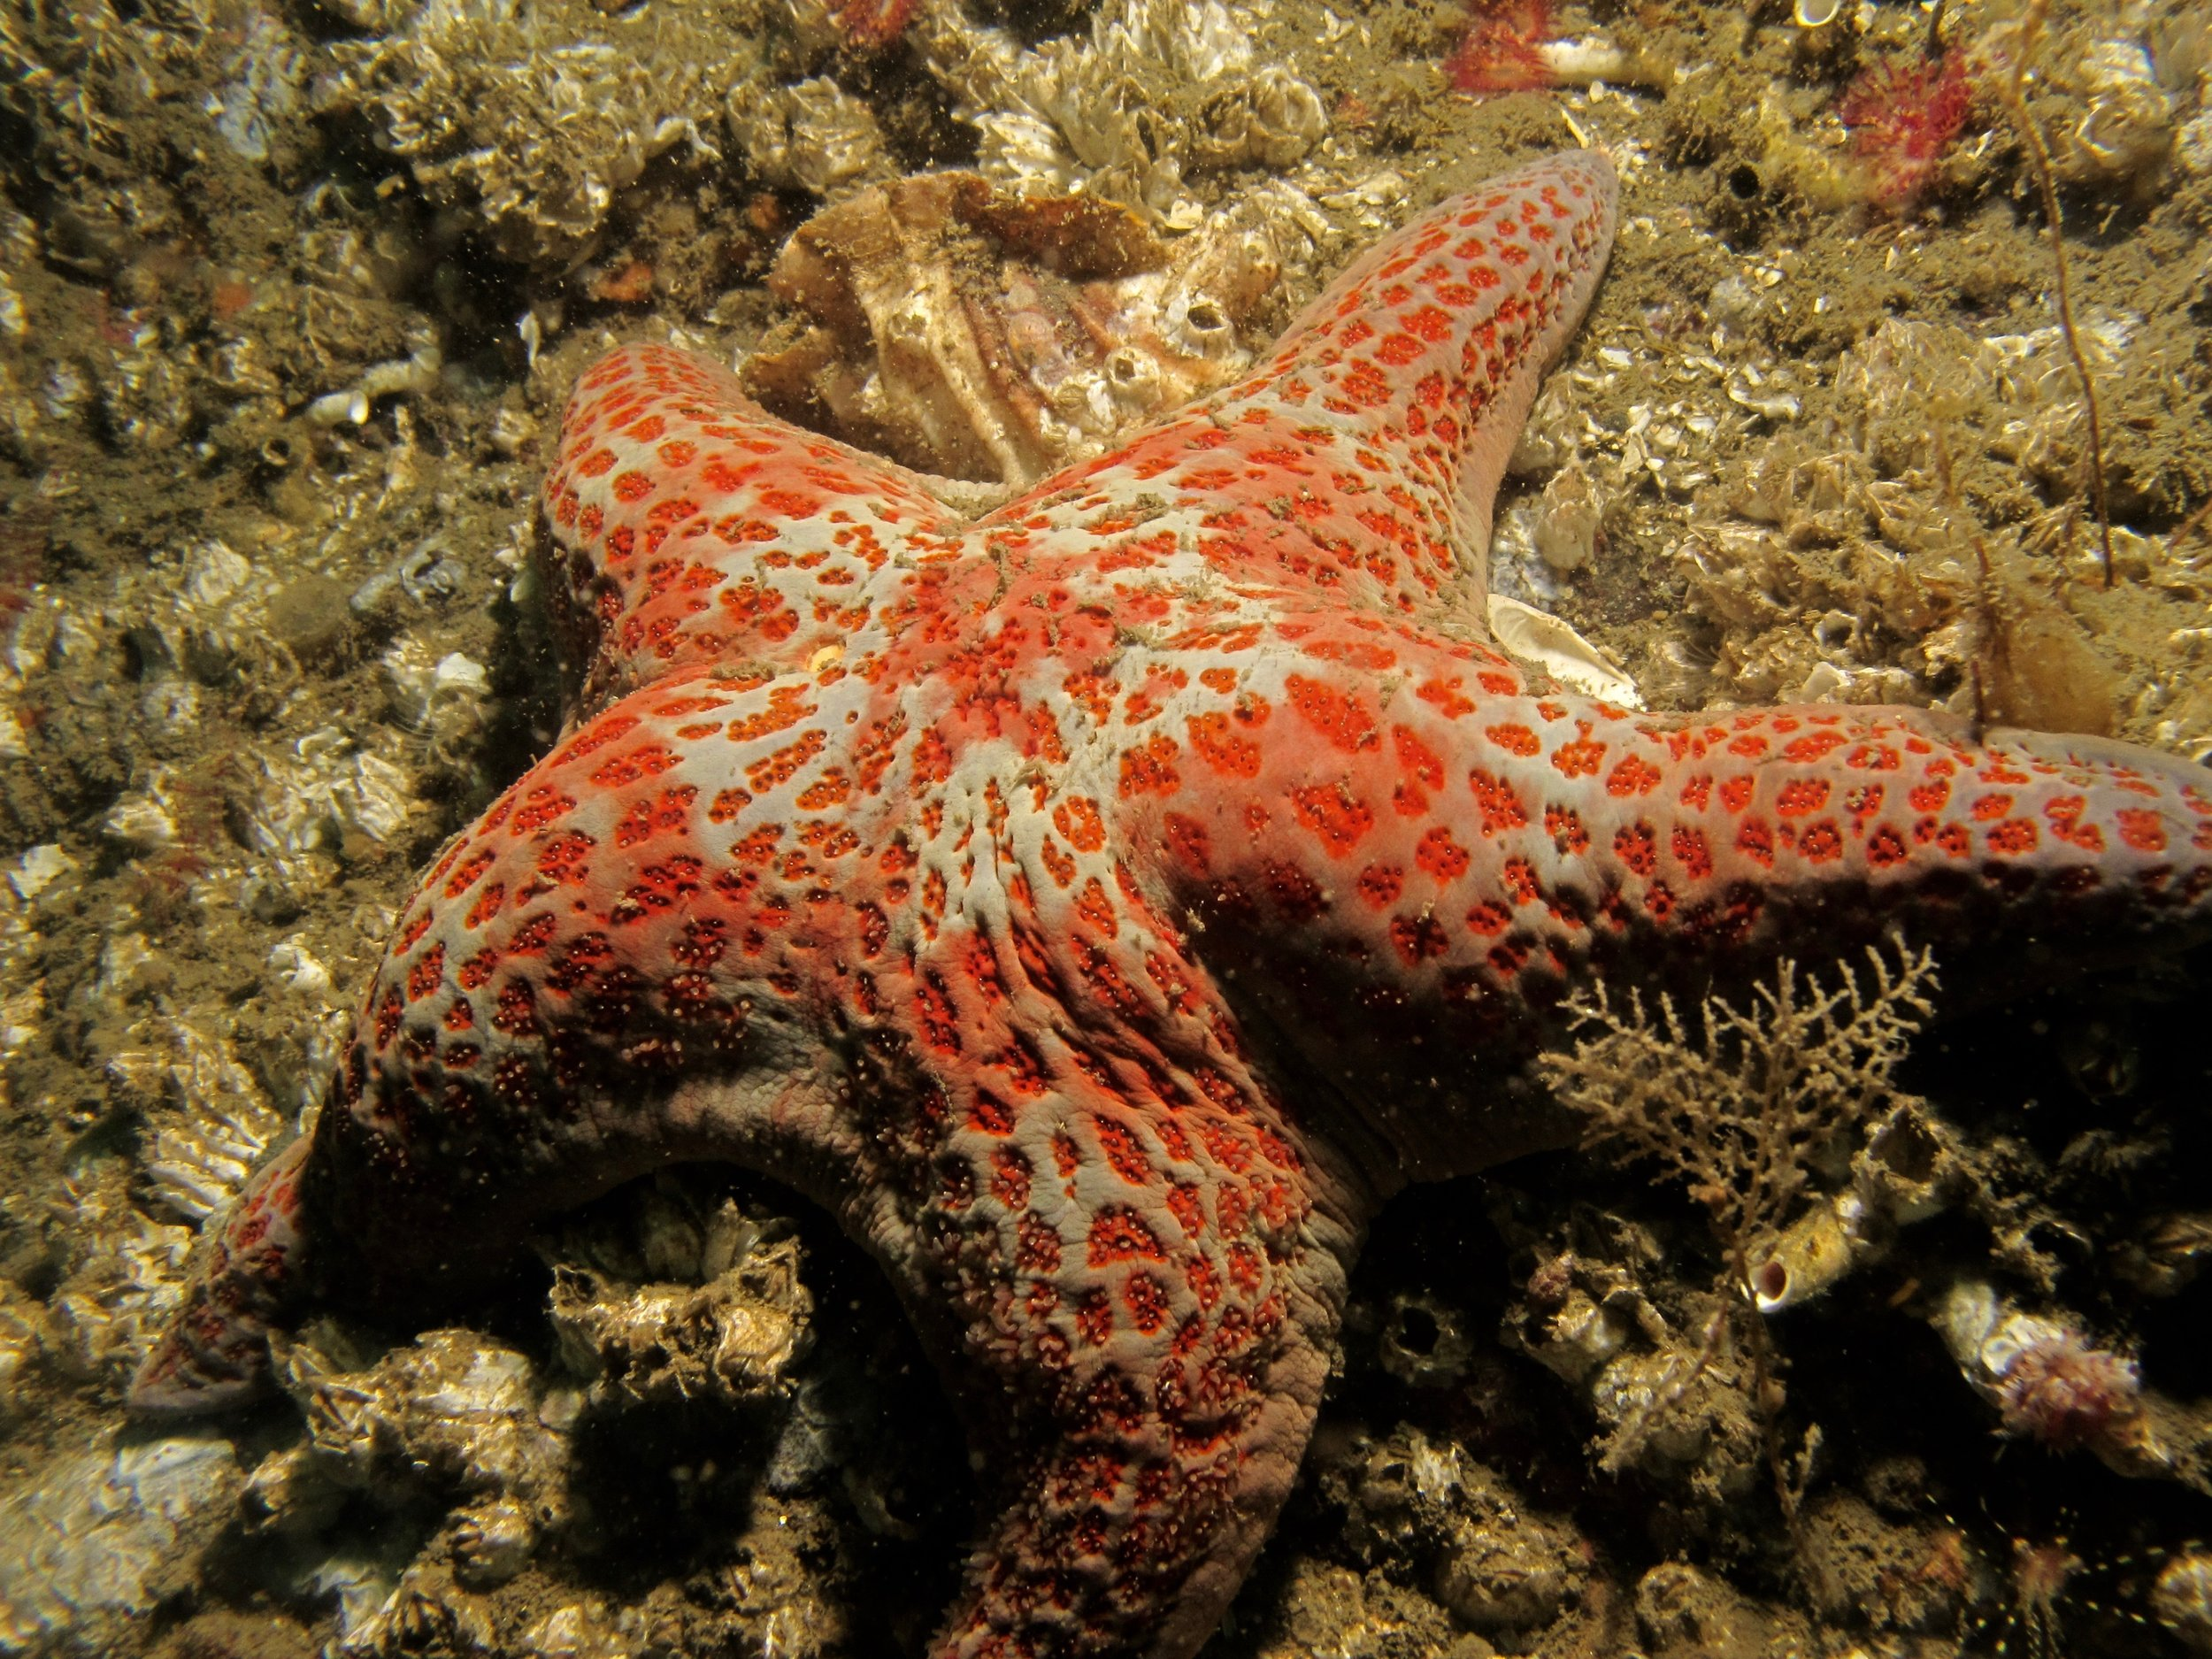 Leather sea stars we less affected as well, and may even be increasing in number